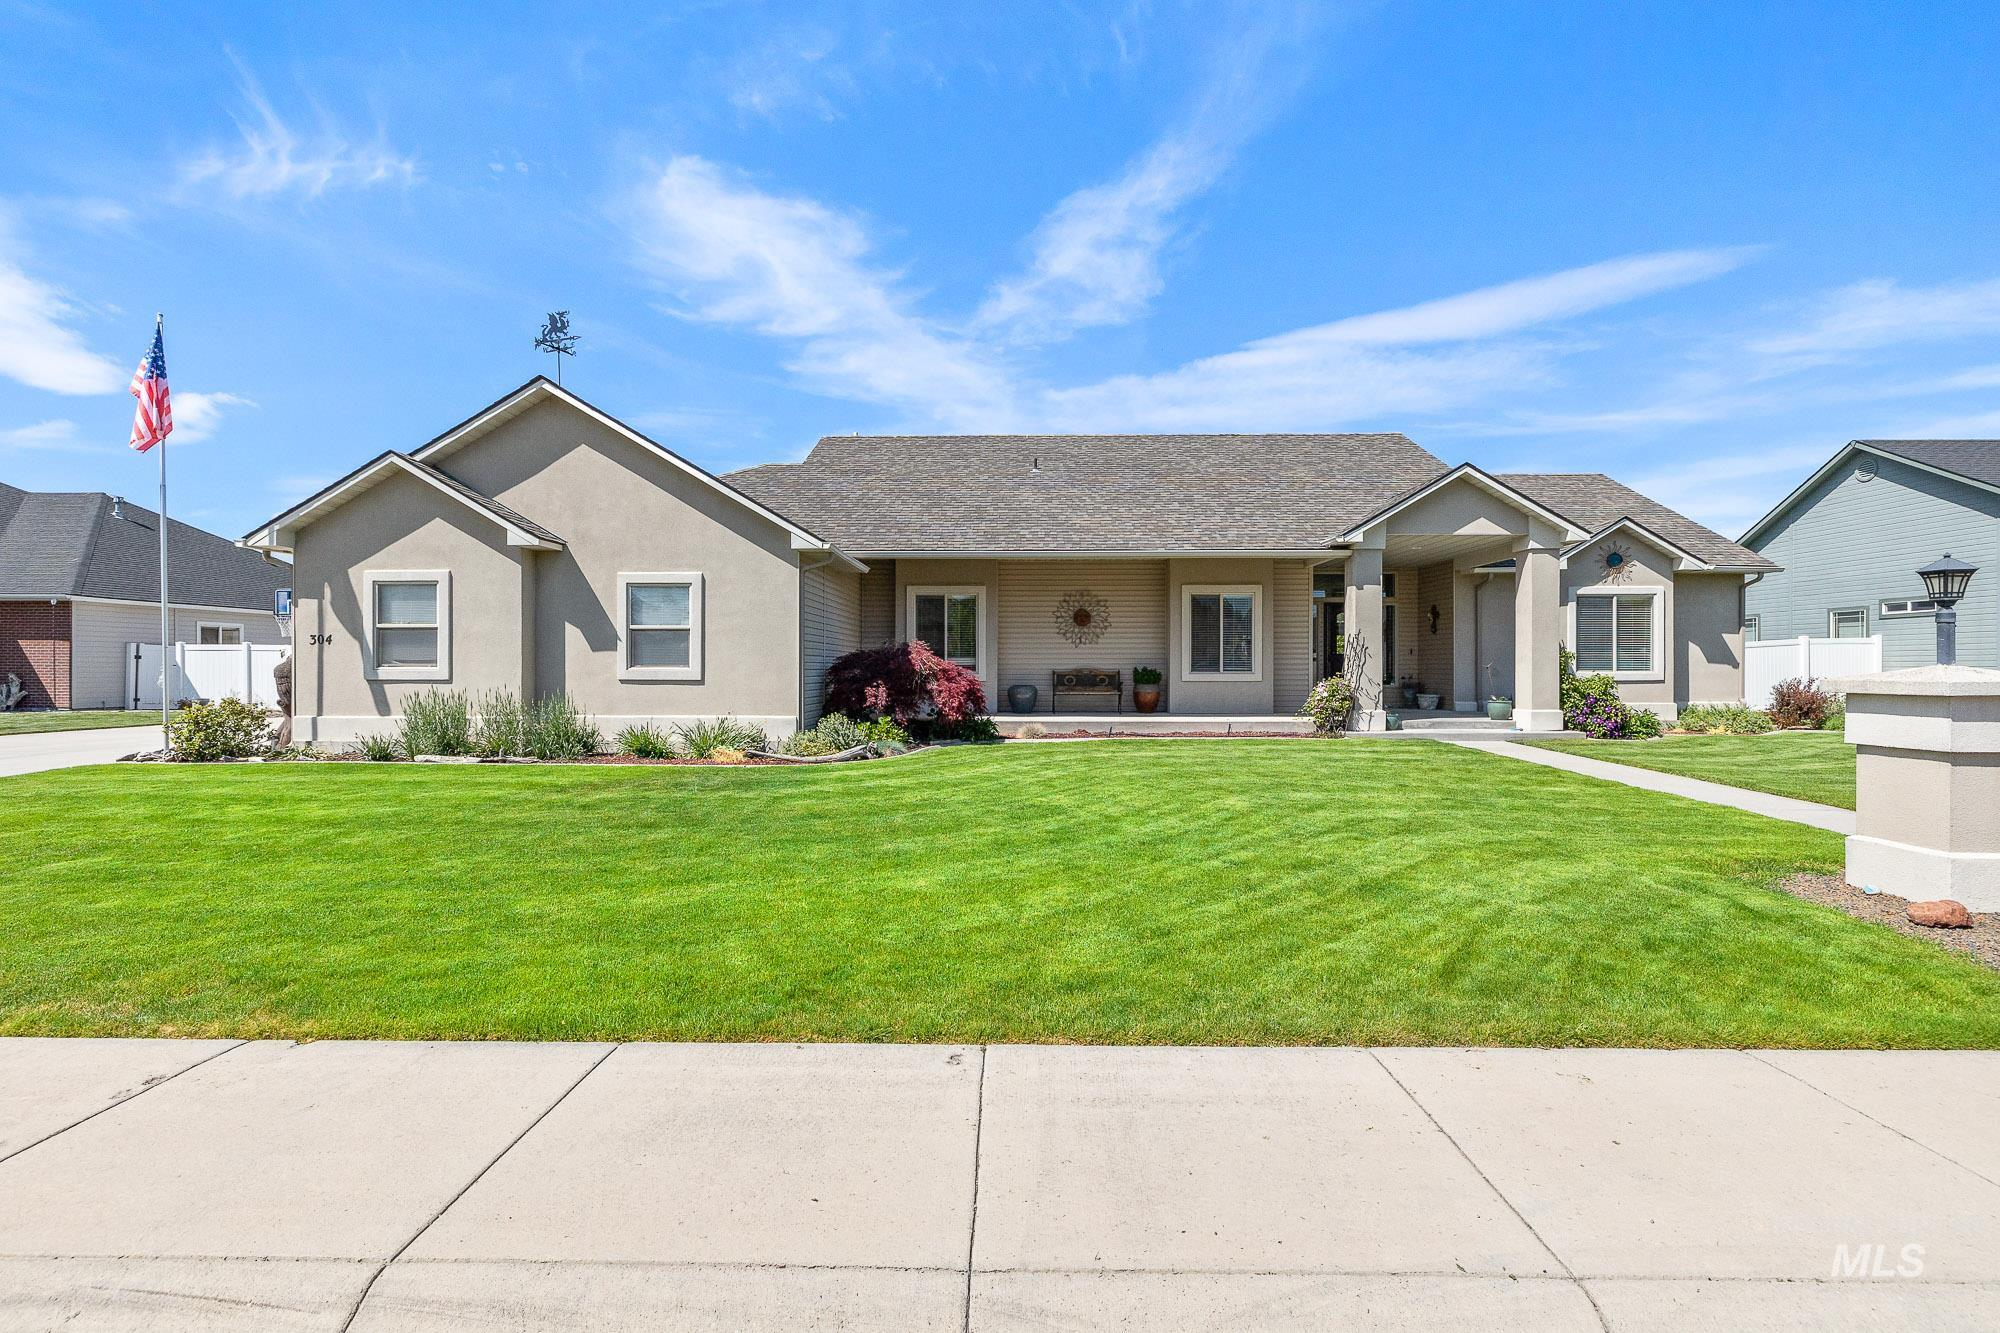 304 W Spruce Street Property Photo - Caldwell, ID real estate listing